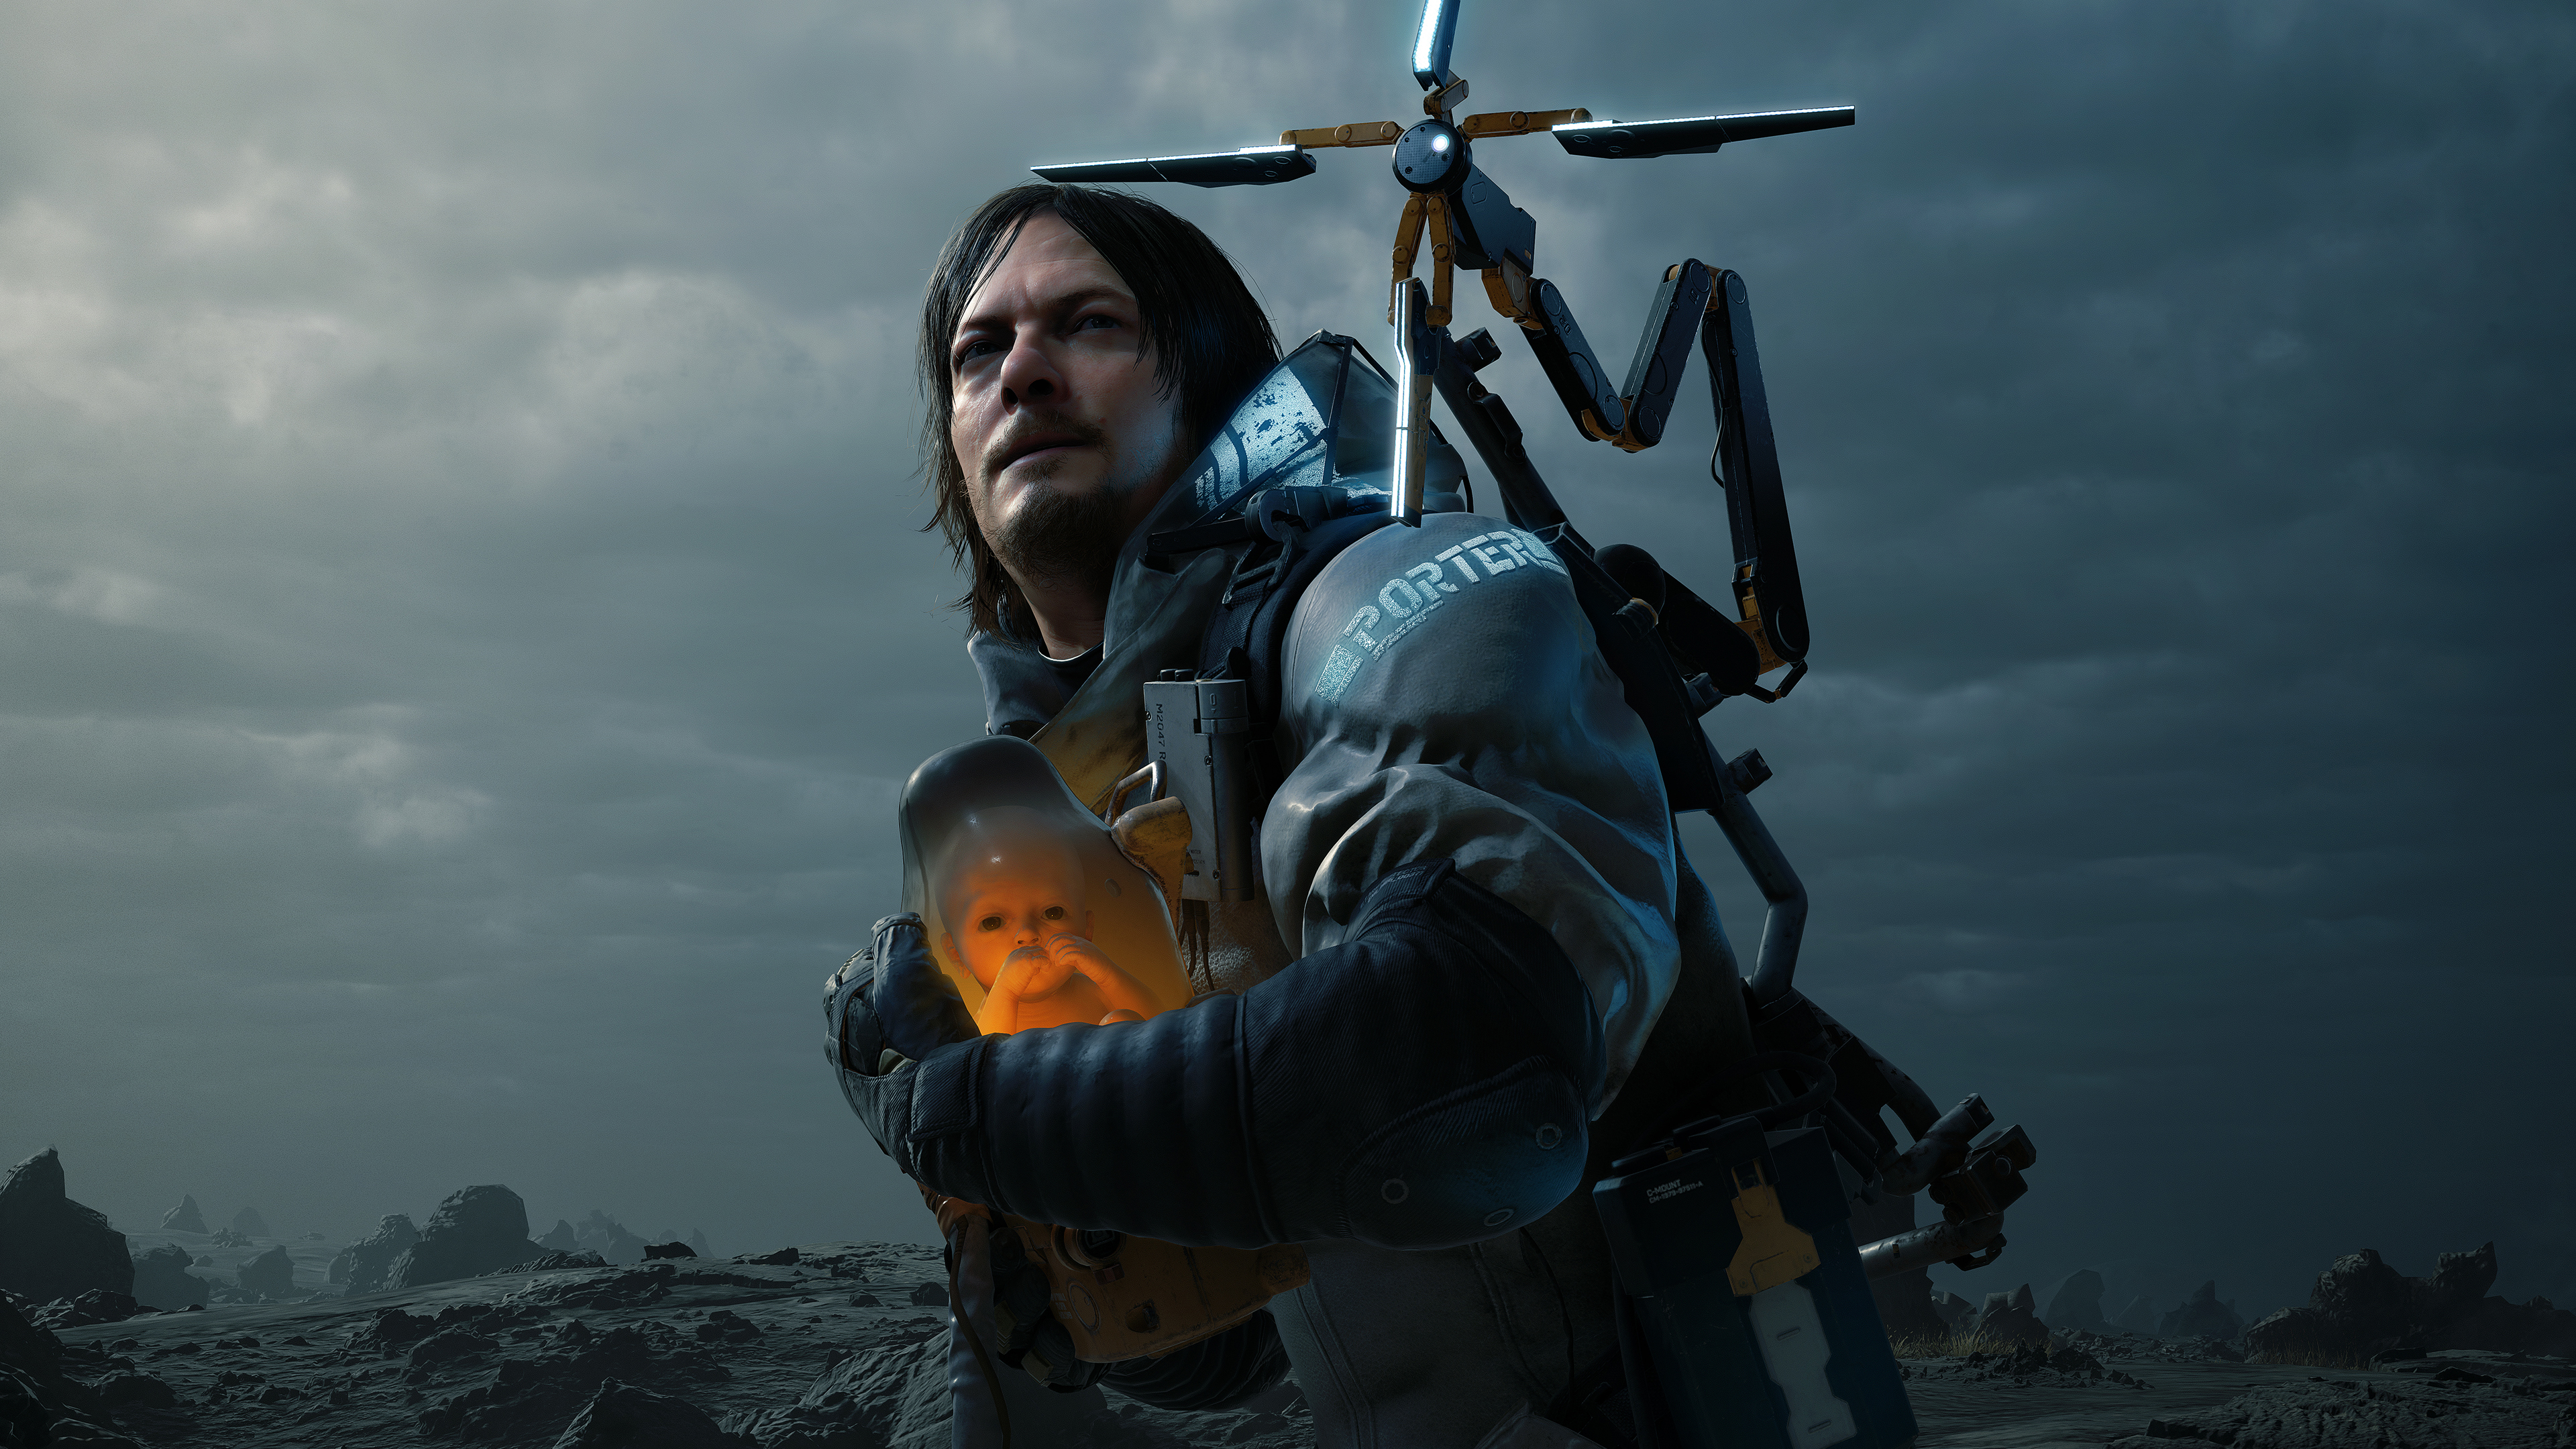 Sam Porter Death Stranding Hd Games 4k Wallpapers Images